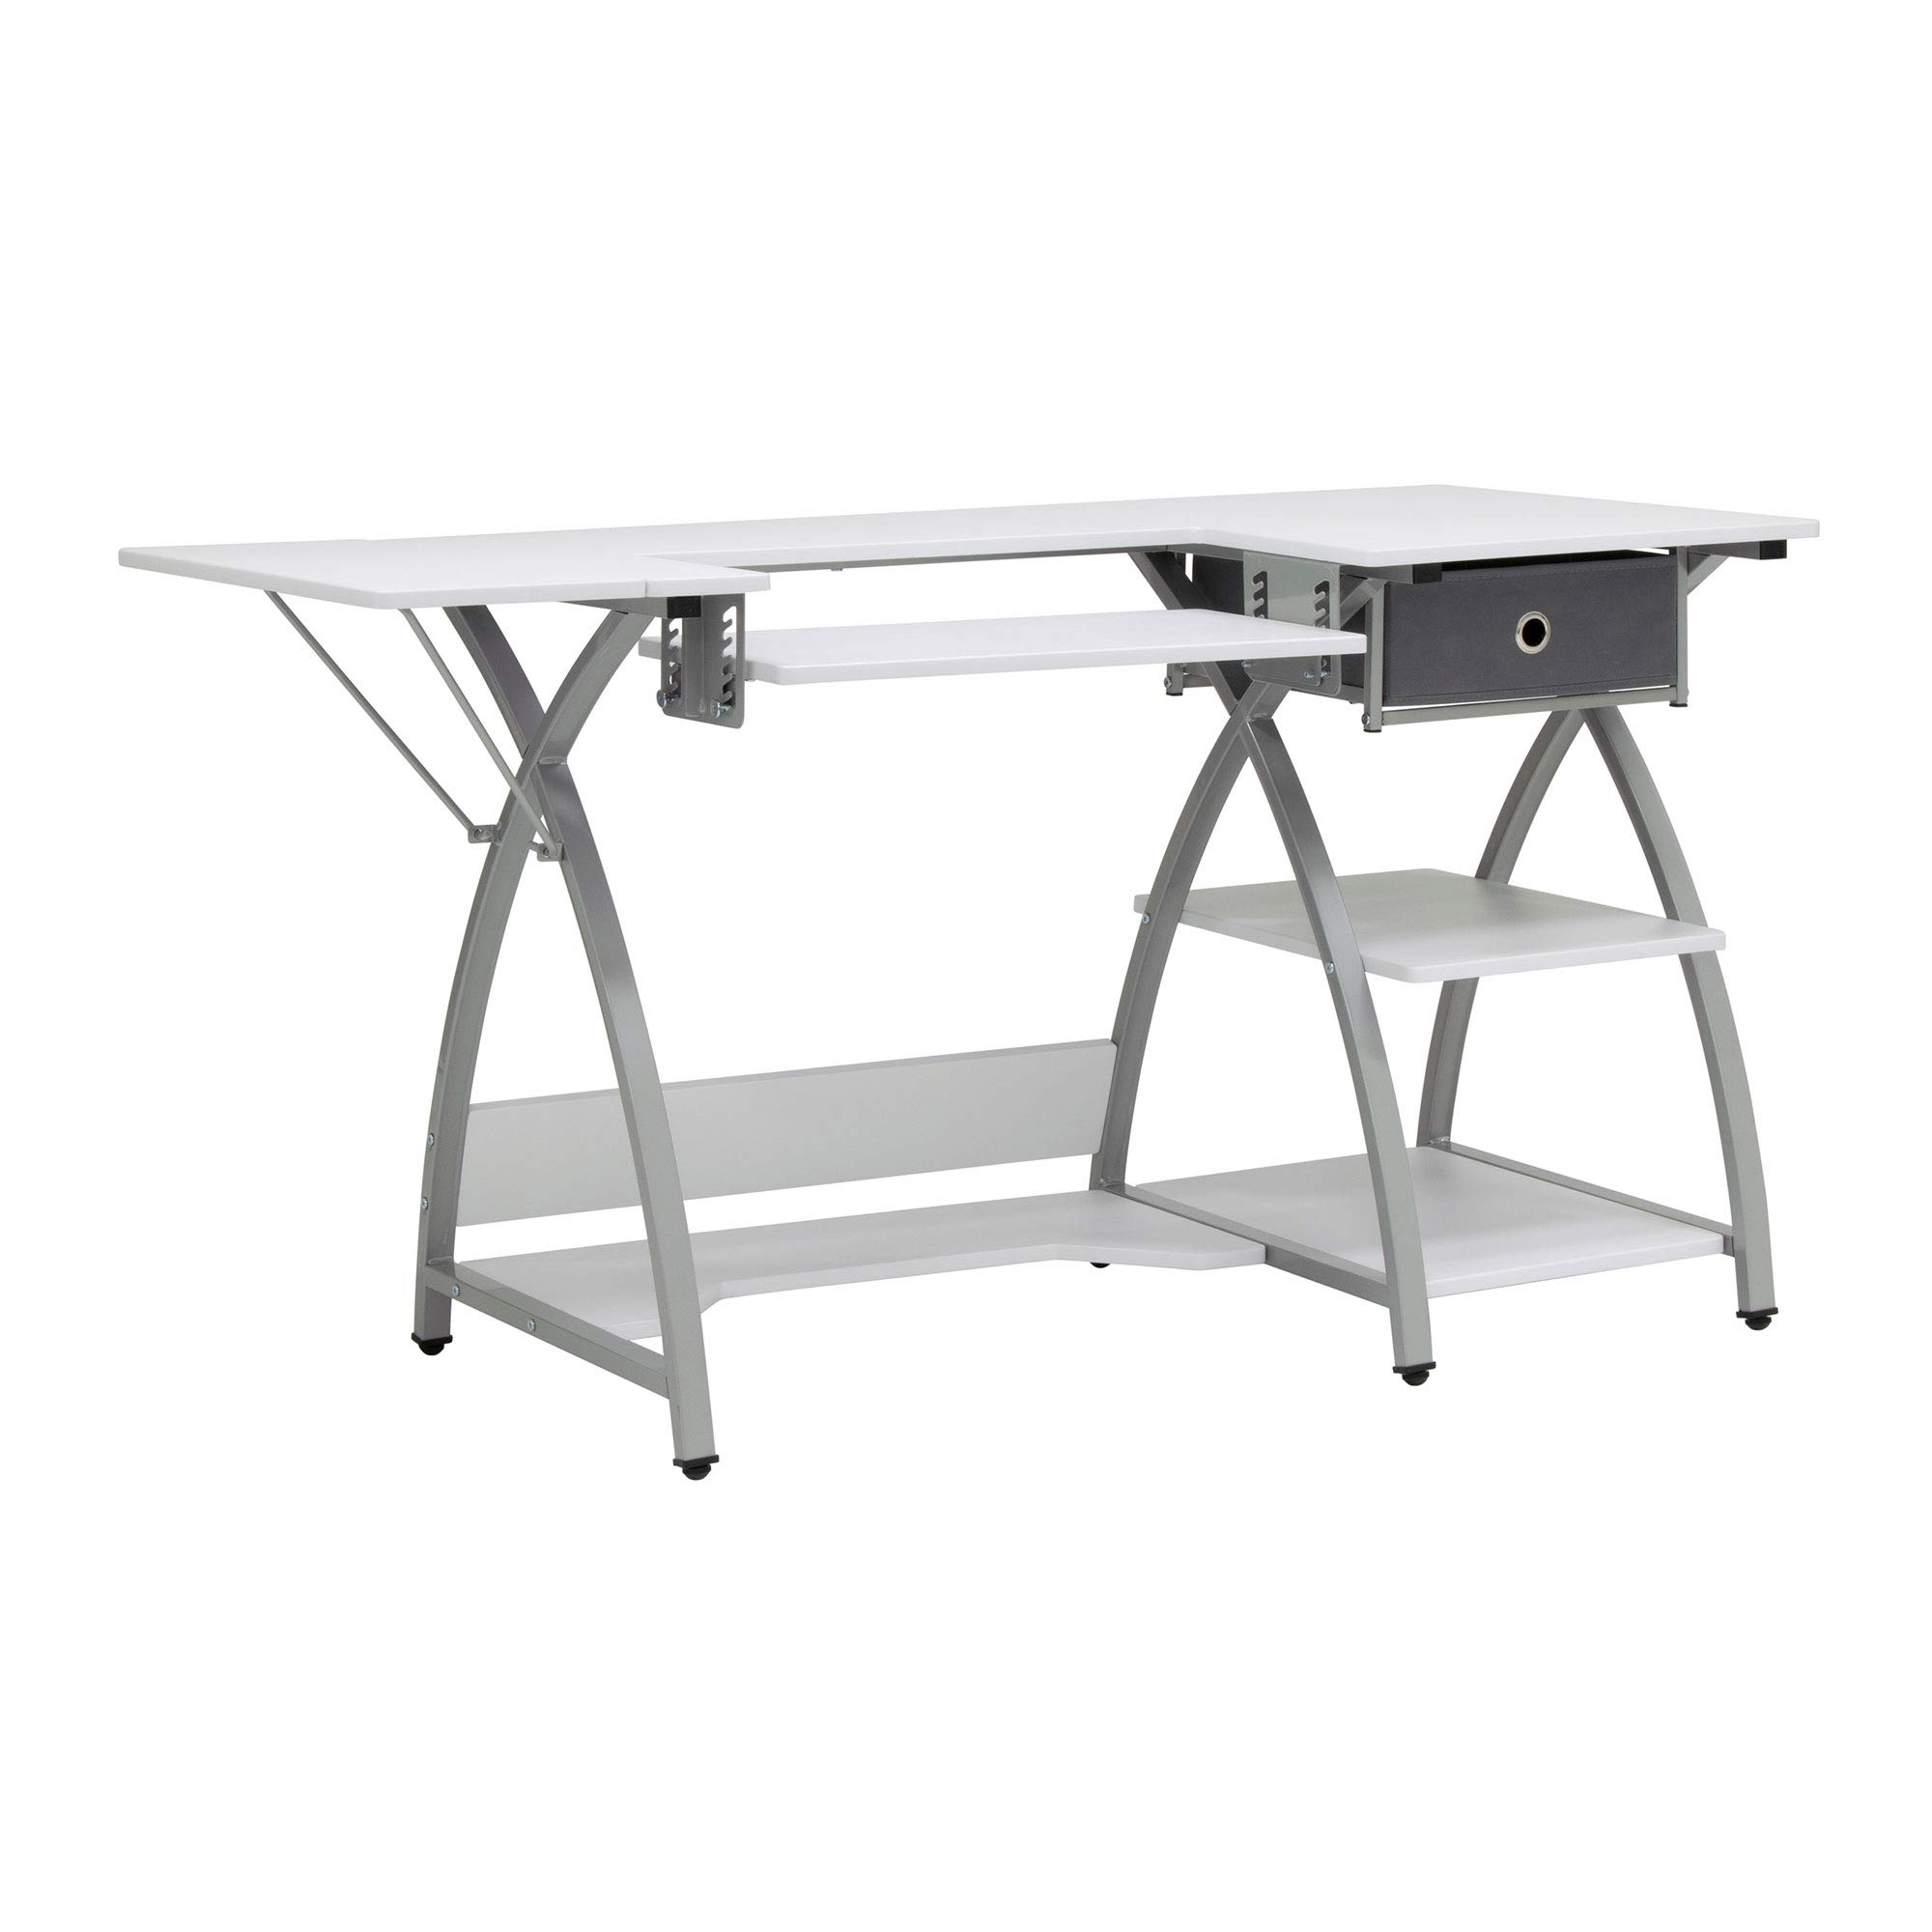 Sew Ready STDN-38018 Venus Sewing Center, 56.75'' W x 23.5'' D x 30'' H, Silver/White by Sew Ready